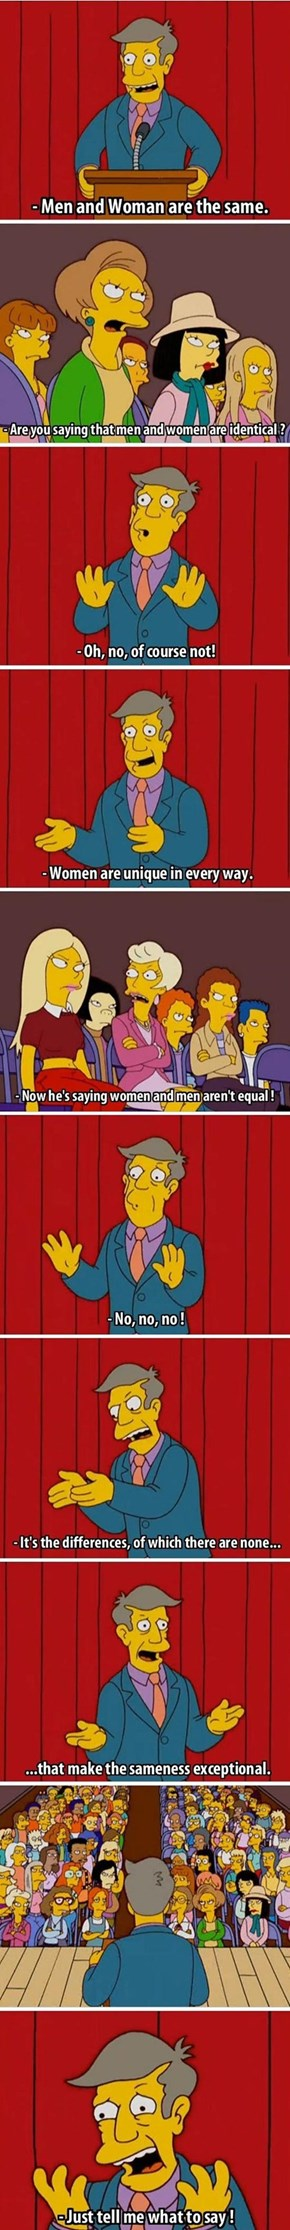 Gender Equality Arguments on the Internet Tend to Go a Lot Like This